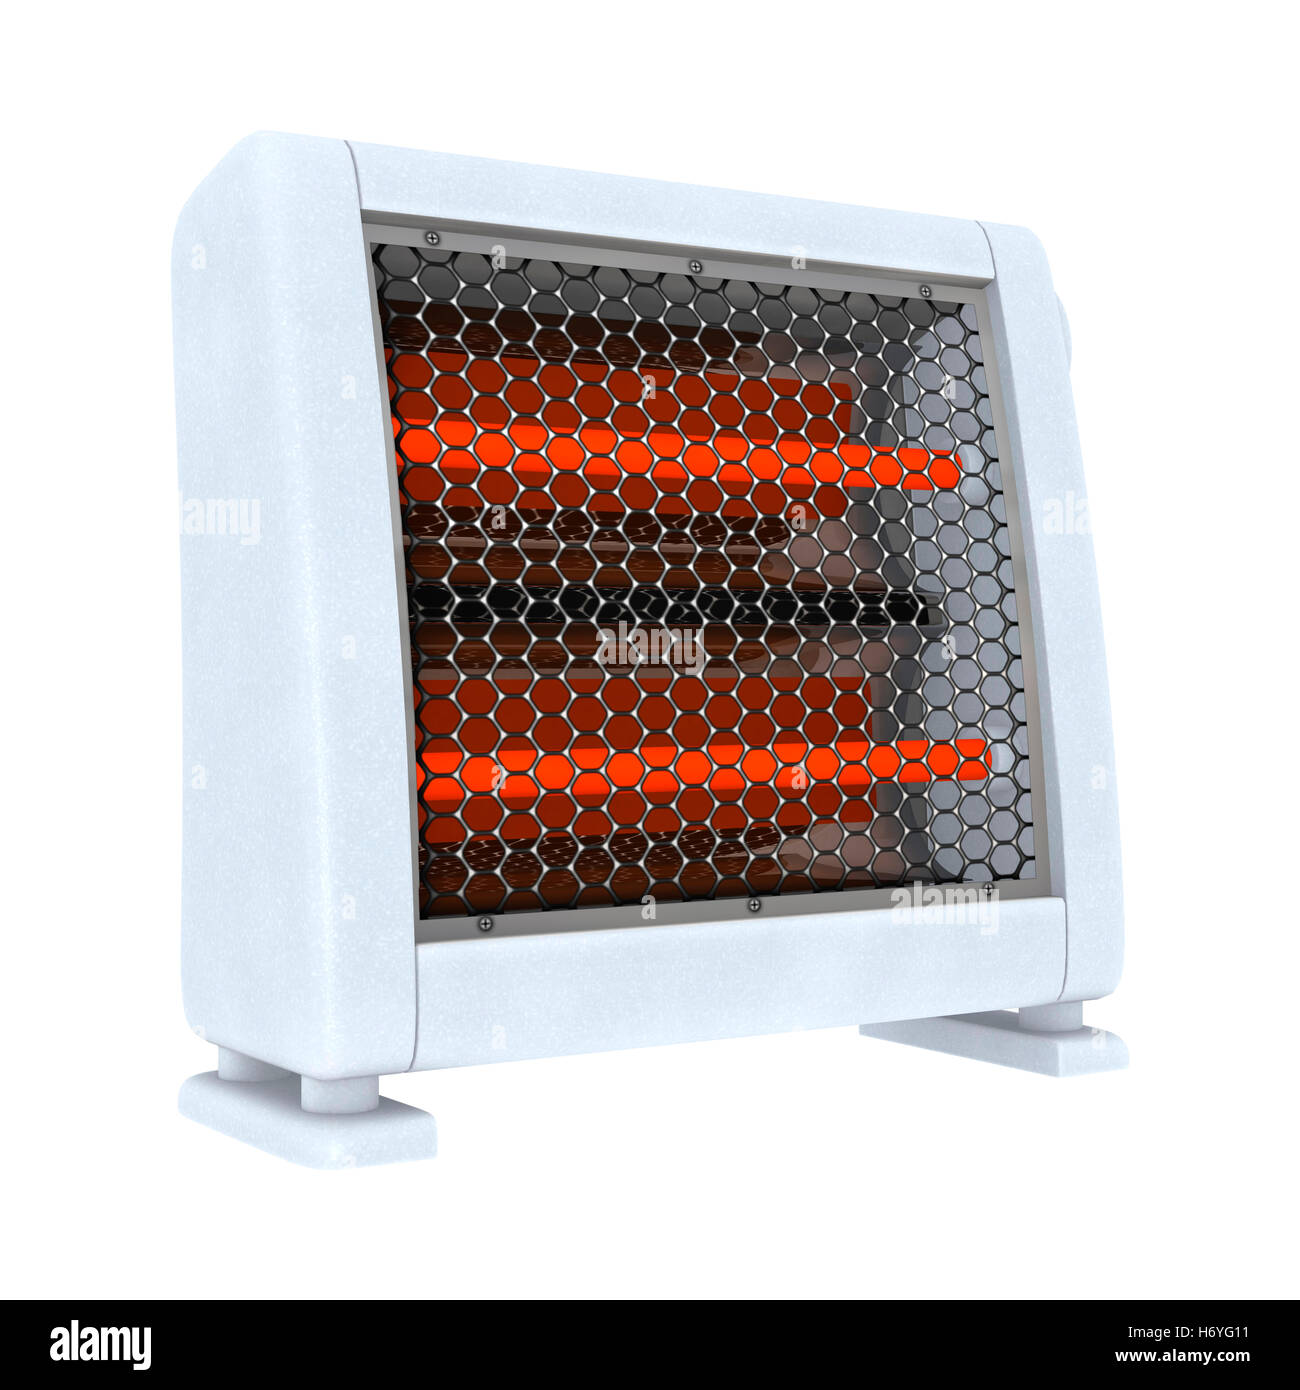 Ceramic Heater Stock Photos Images Alamy 3d Rendering Of A Isolated On White Background Image